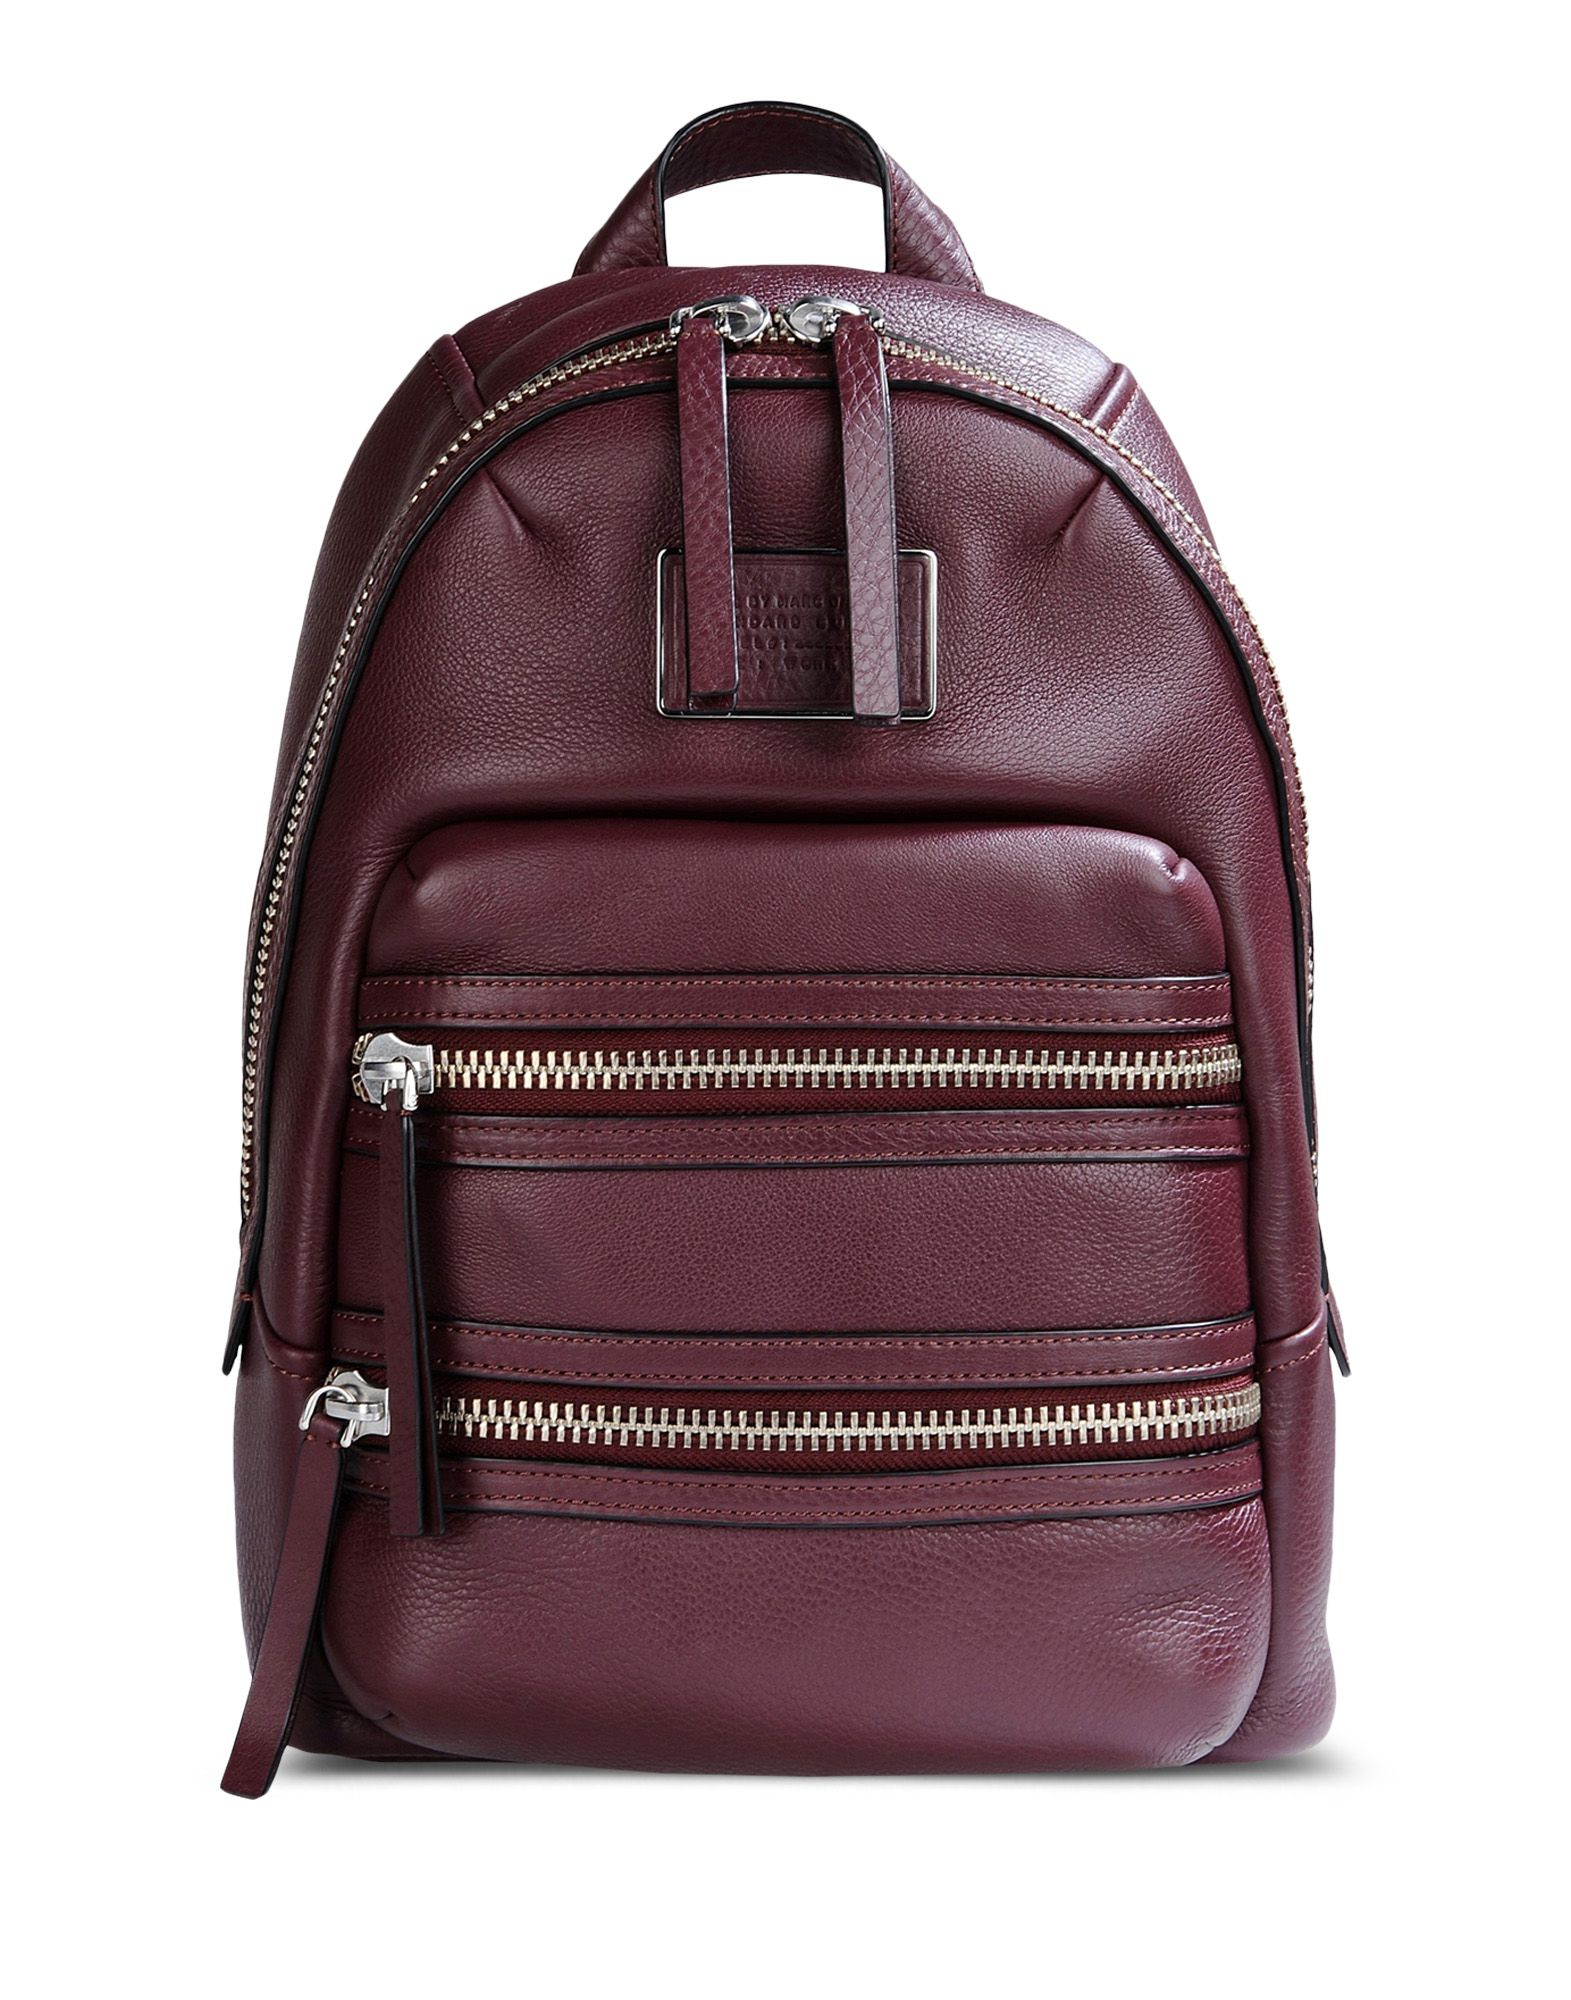 marc by marc jacobs rucksack in purple maroon lyst. Black Bedroom Furniture Sets. Home Design Ideas